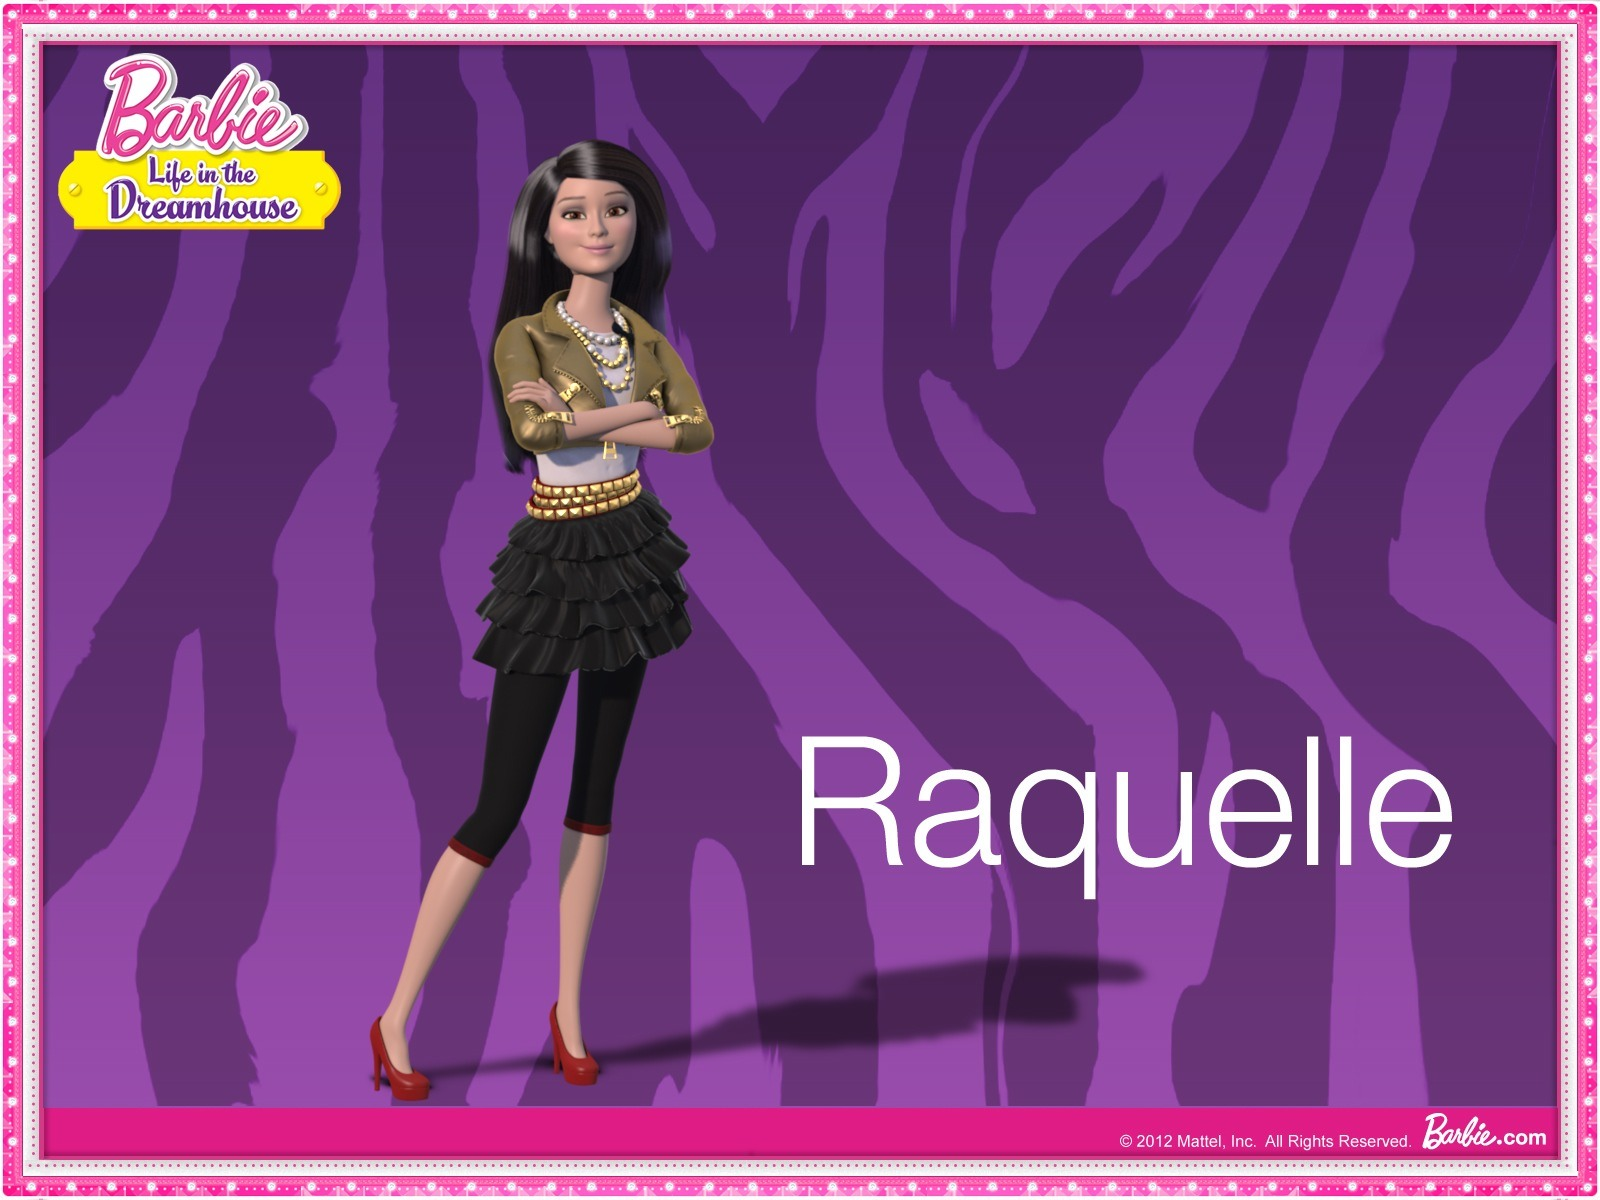 Barbie life in the dramhouse barbie movies 30845159 1600 1200